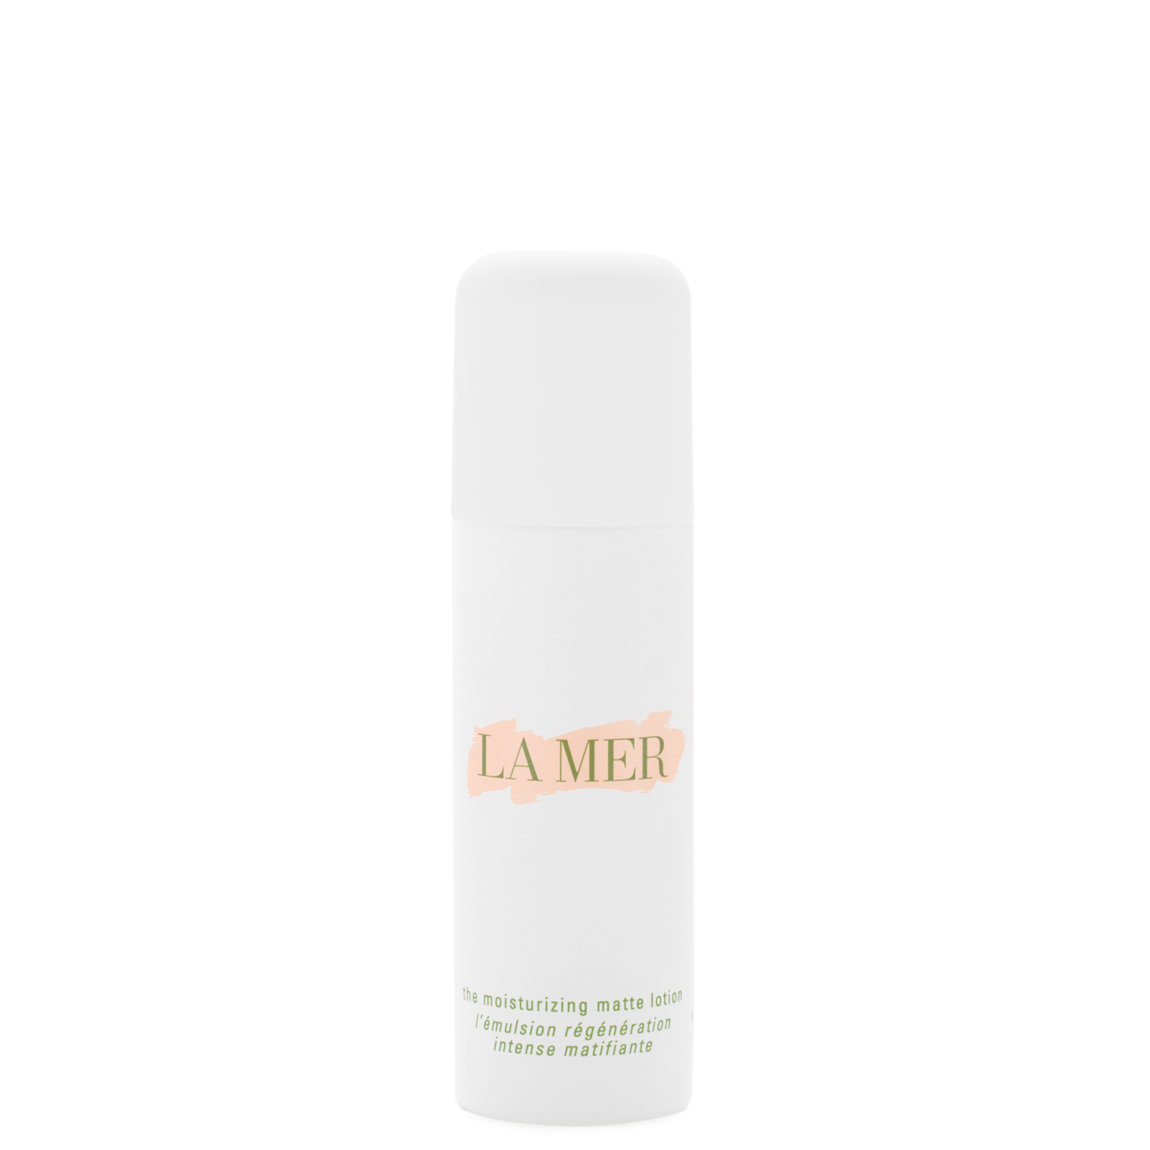 La Mer The Moisturizing Matte Lotion product smear.